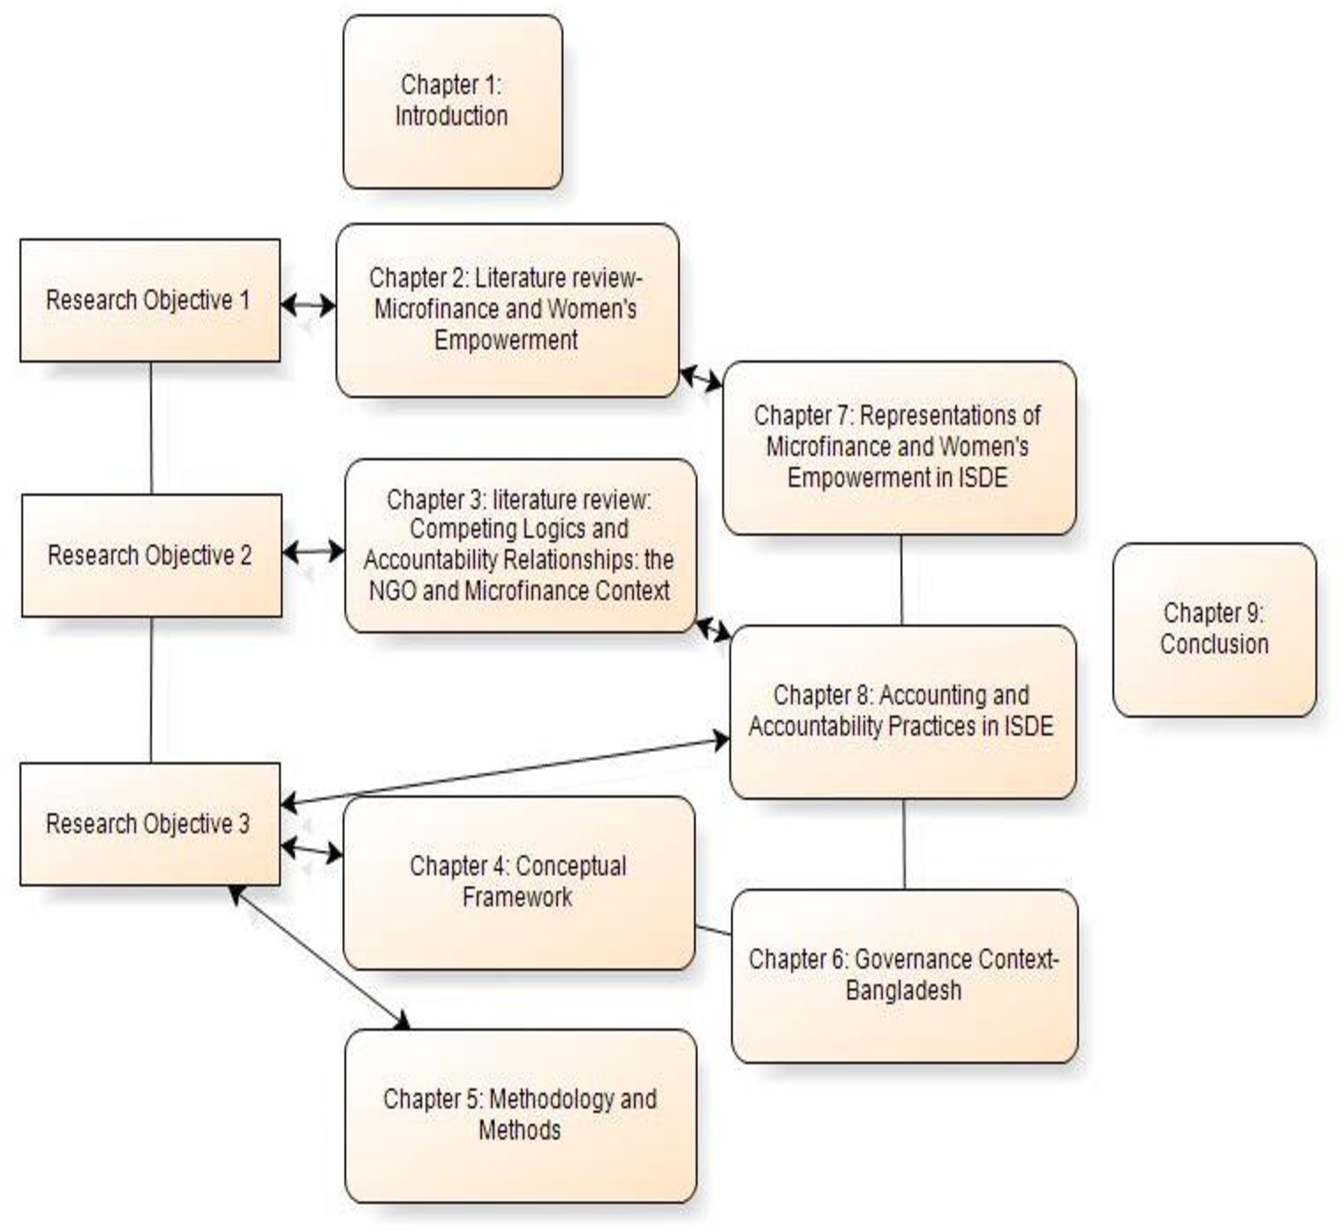 Figure 1 1 from Microfinance and Women's Empowerment in Bangladesh